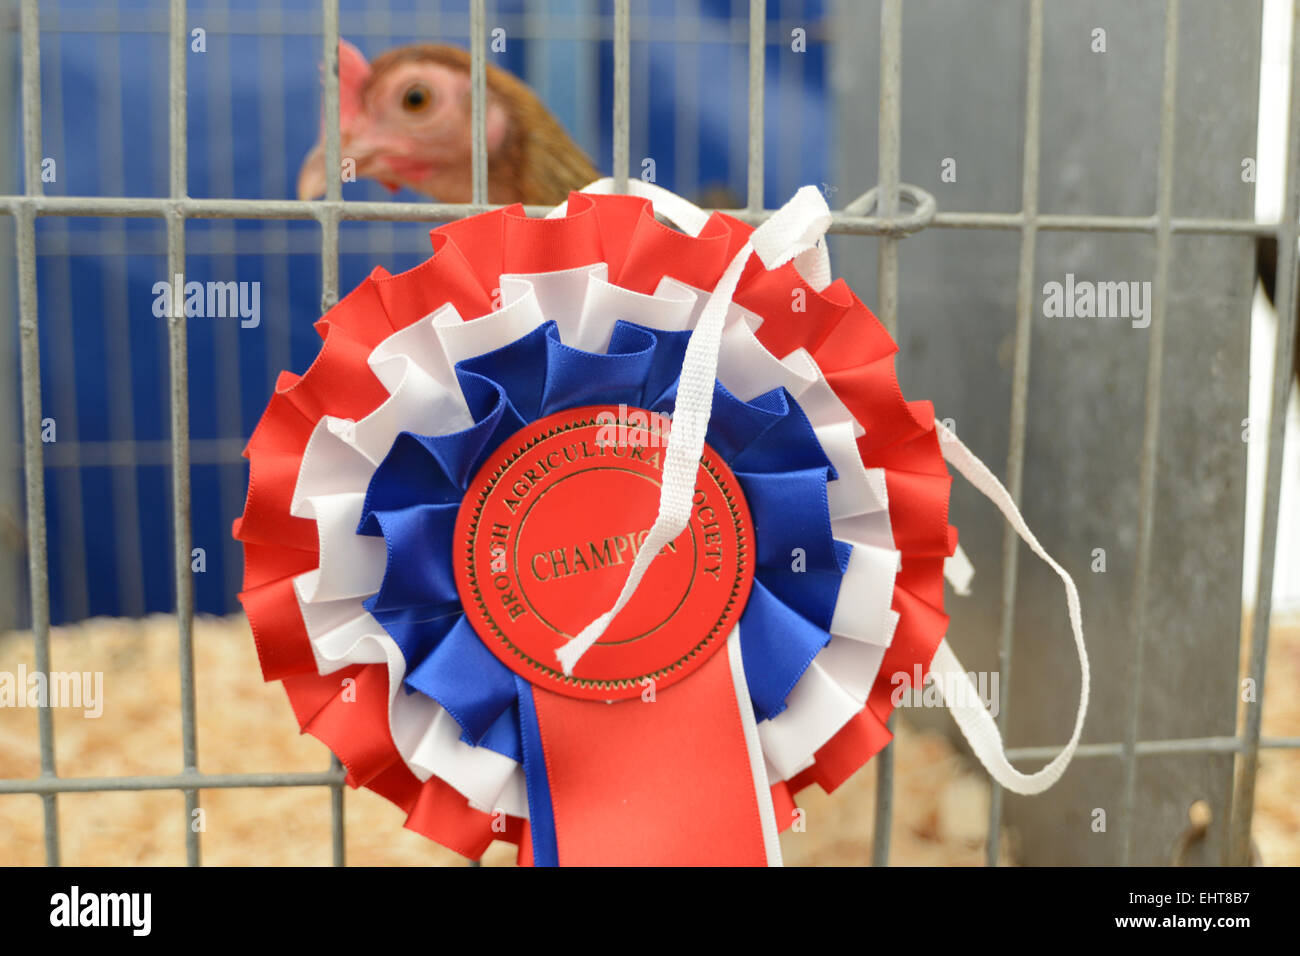 A prize winning cockerel is awarded a rosette at an Agricultural show, Brough Sowerby, Cumbria UK - Stock Image